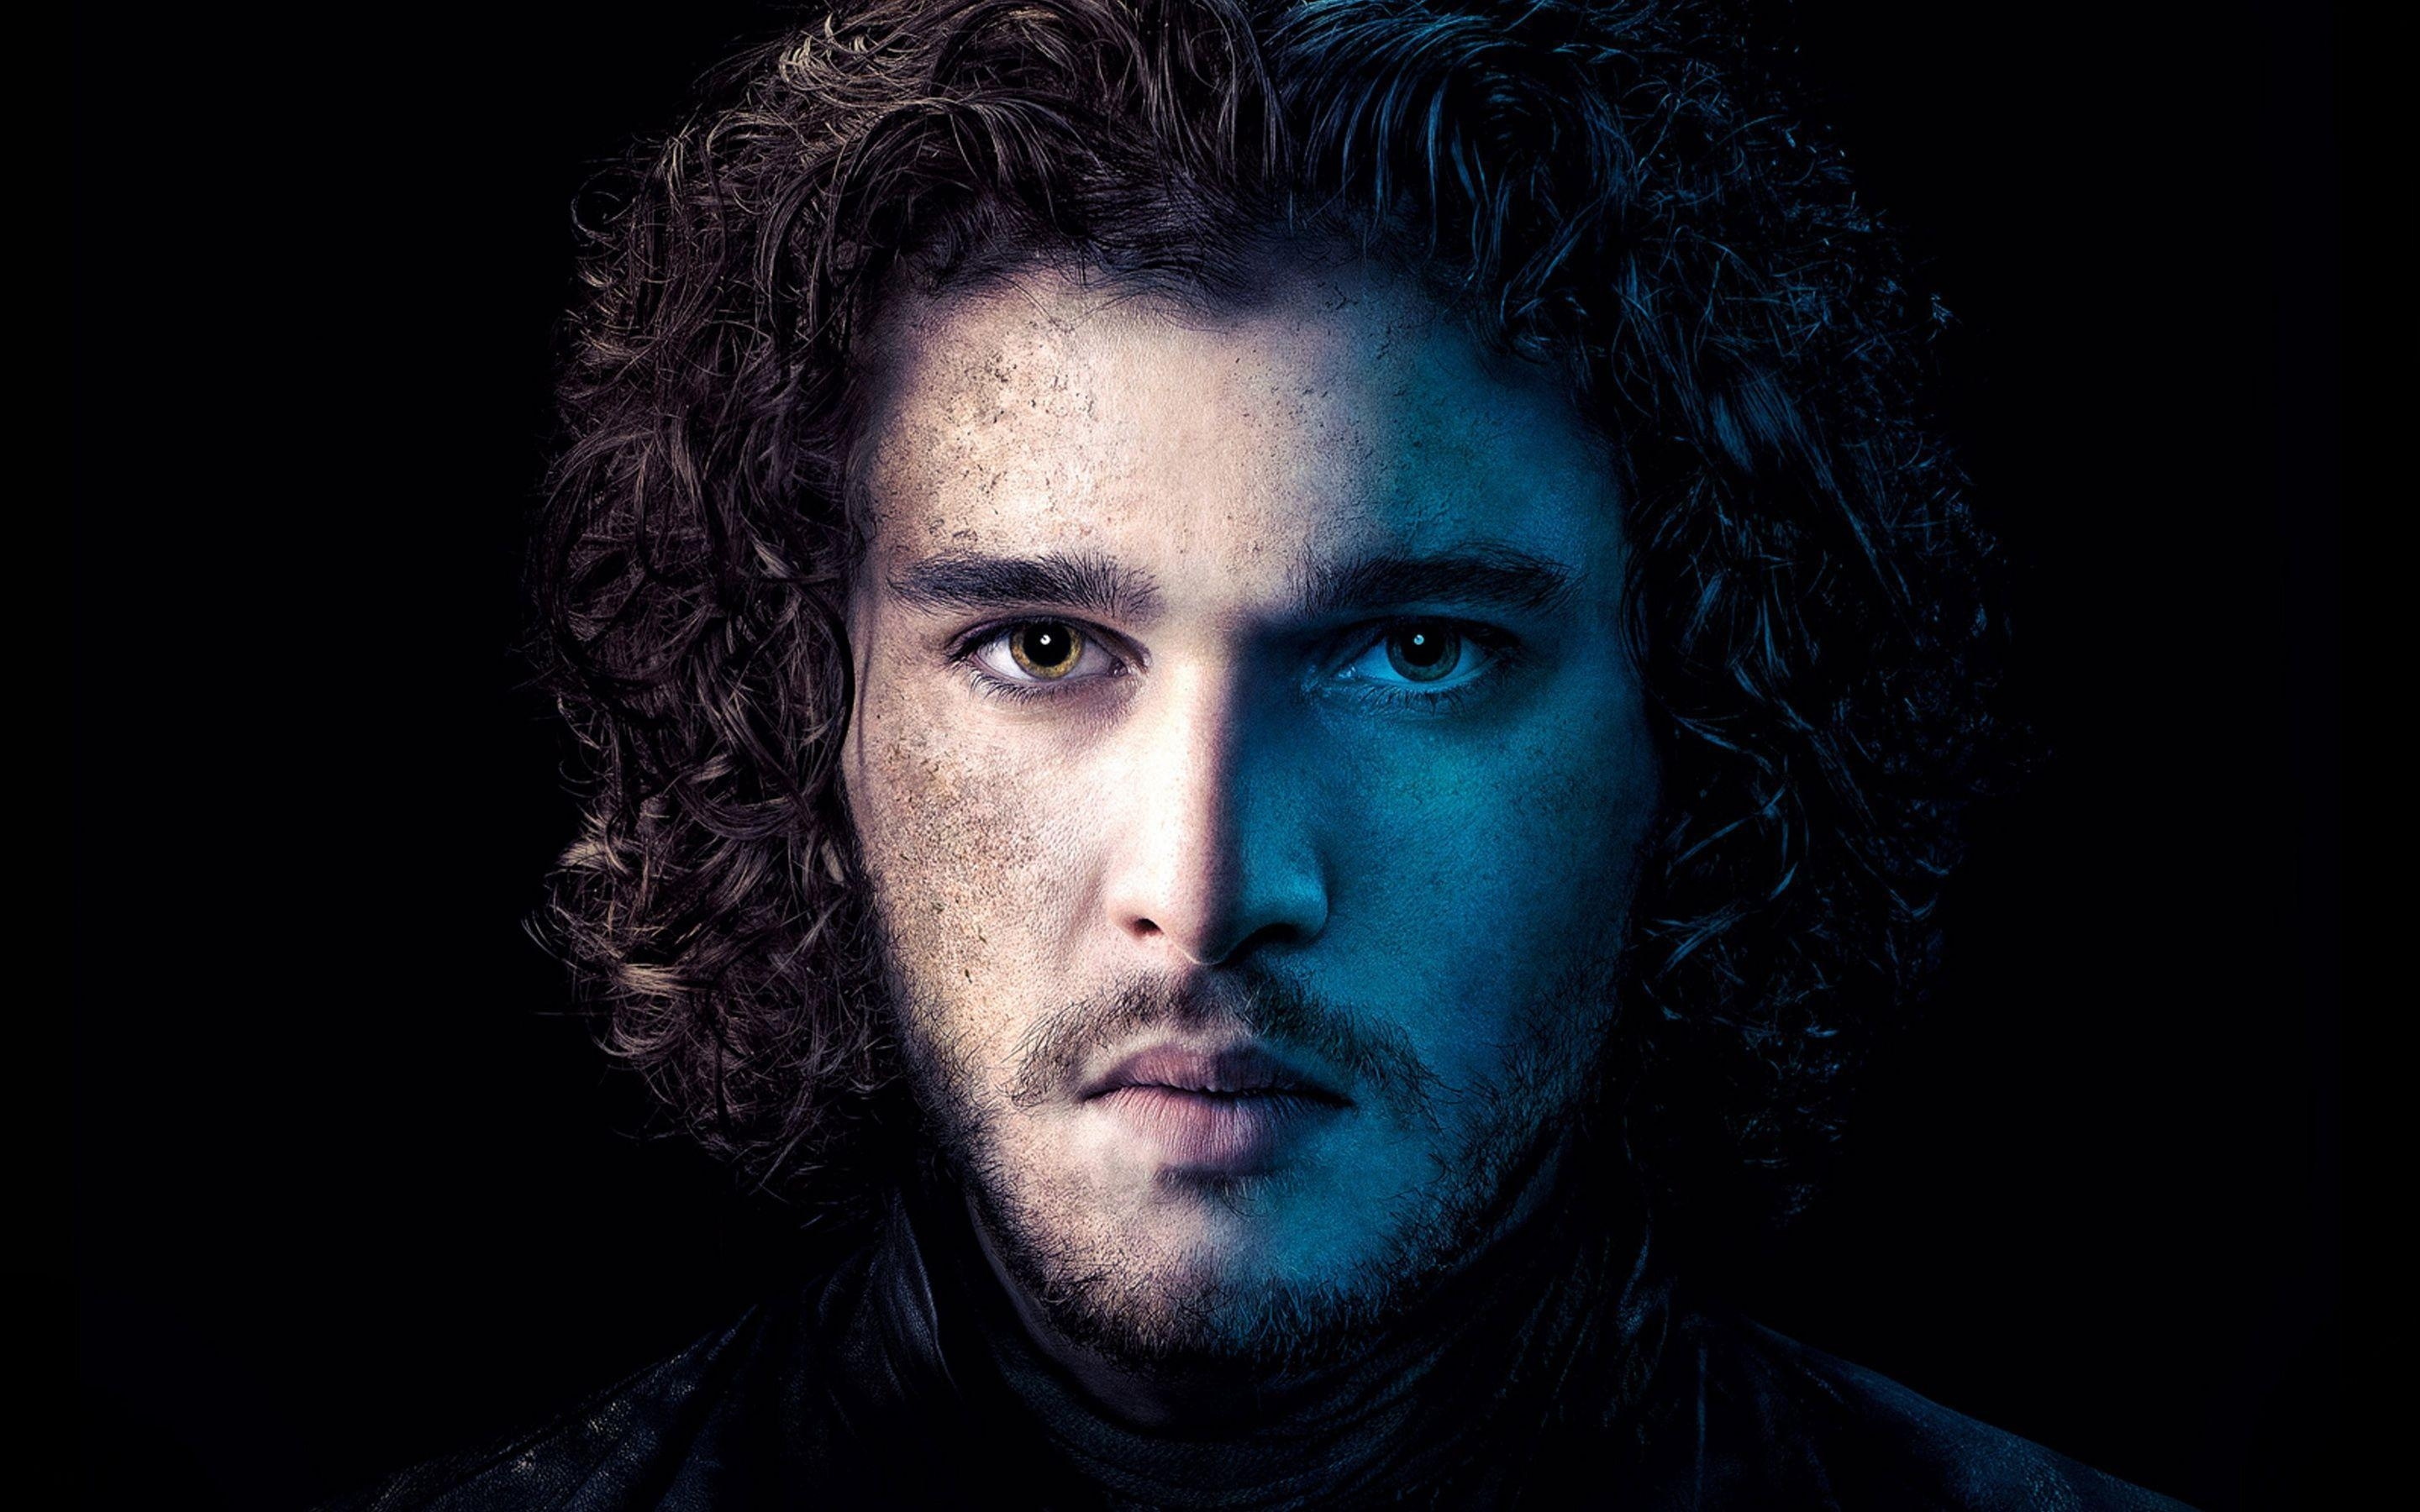 jon snow game of thrones wallpapers - wallpaper cave